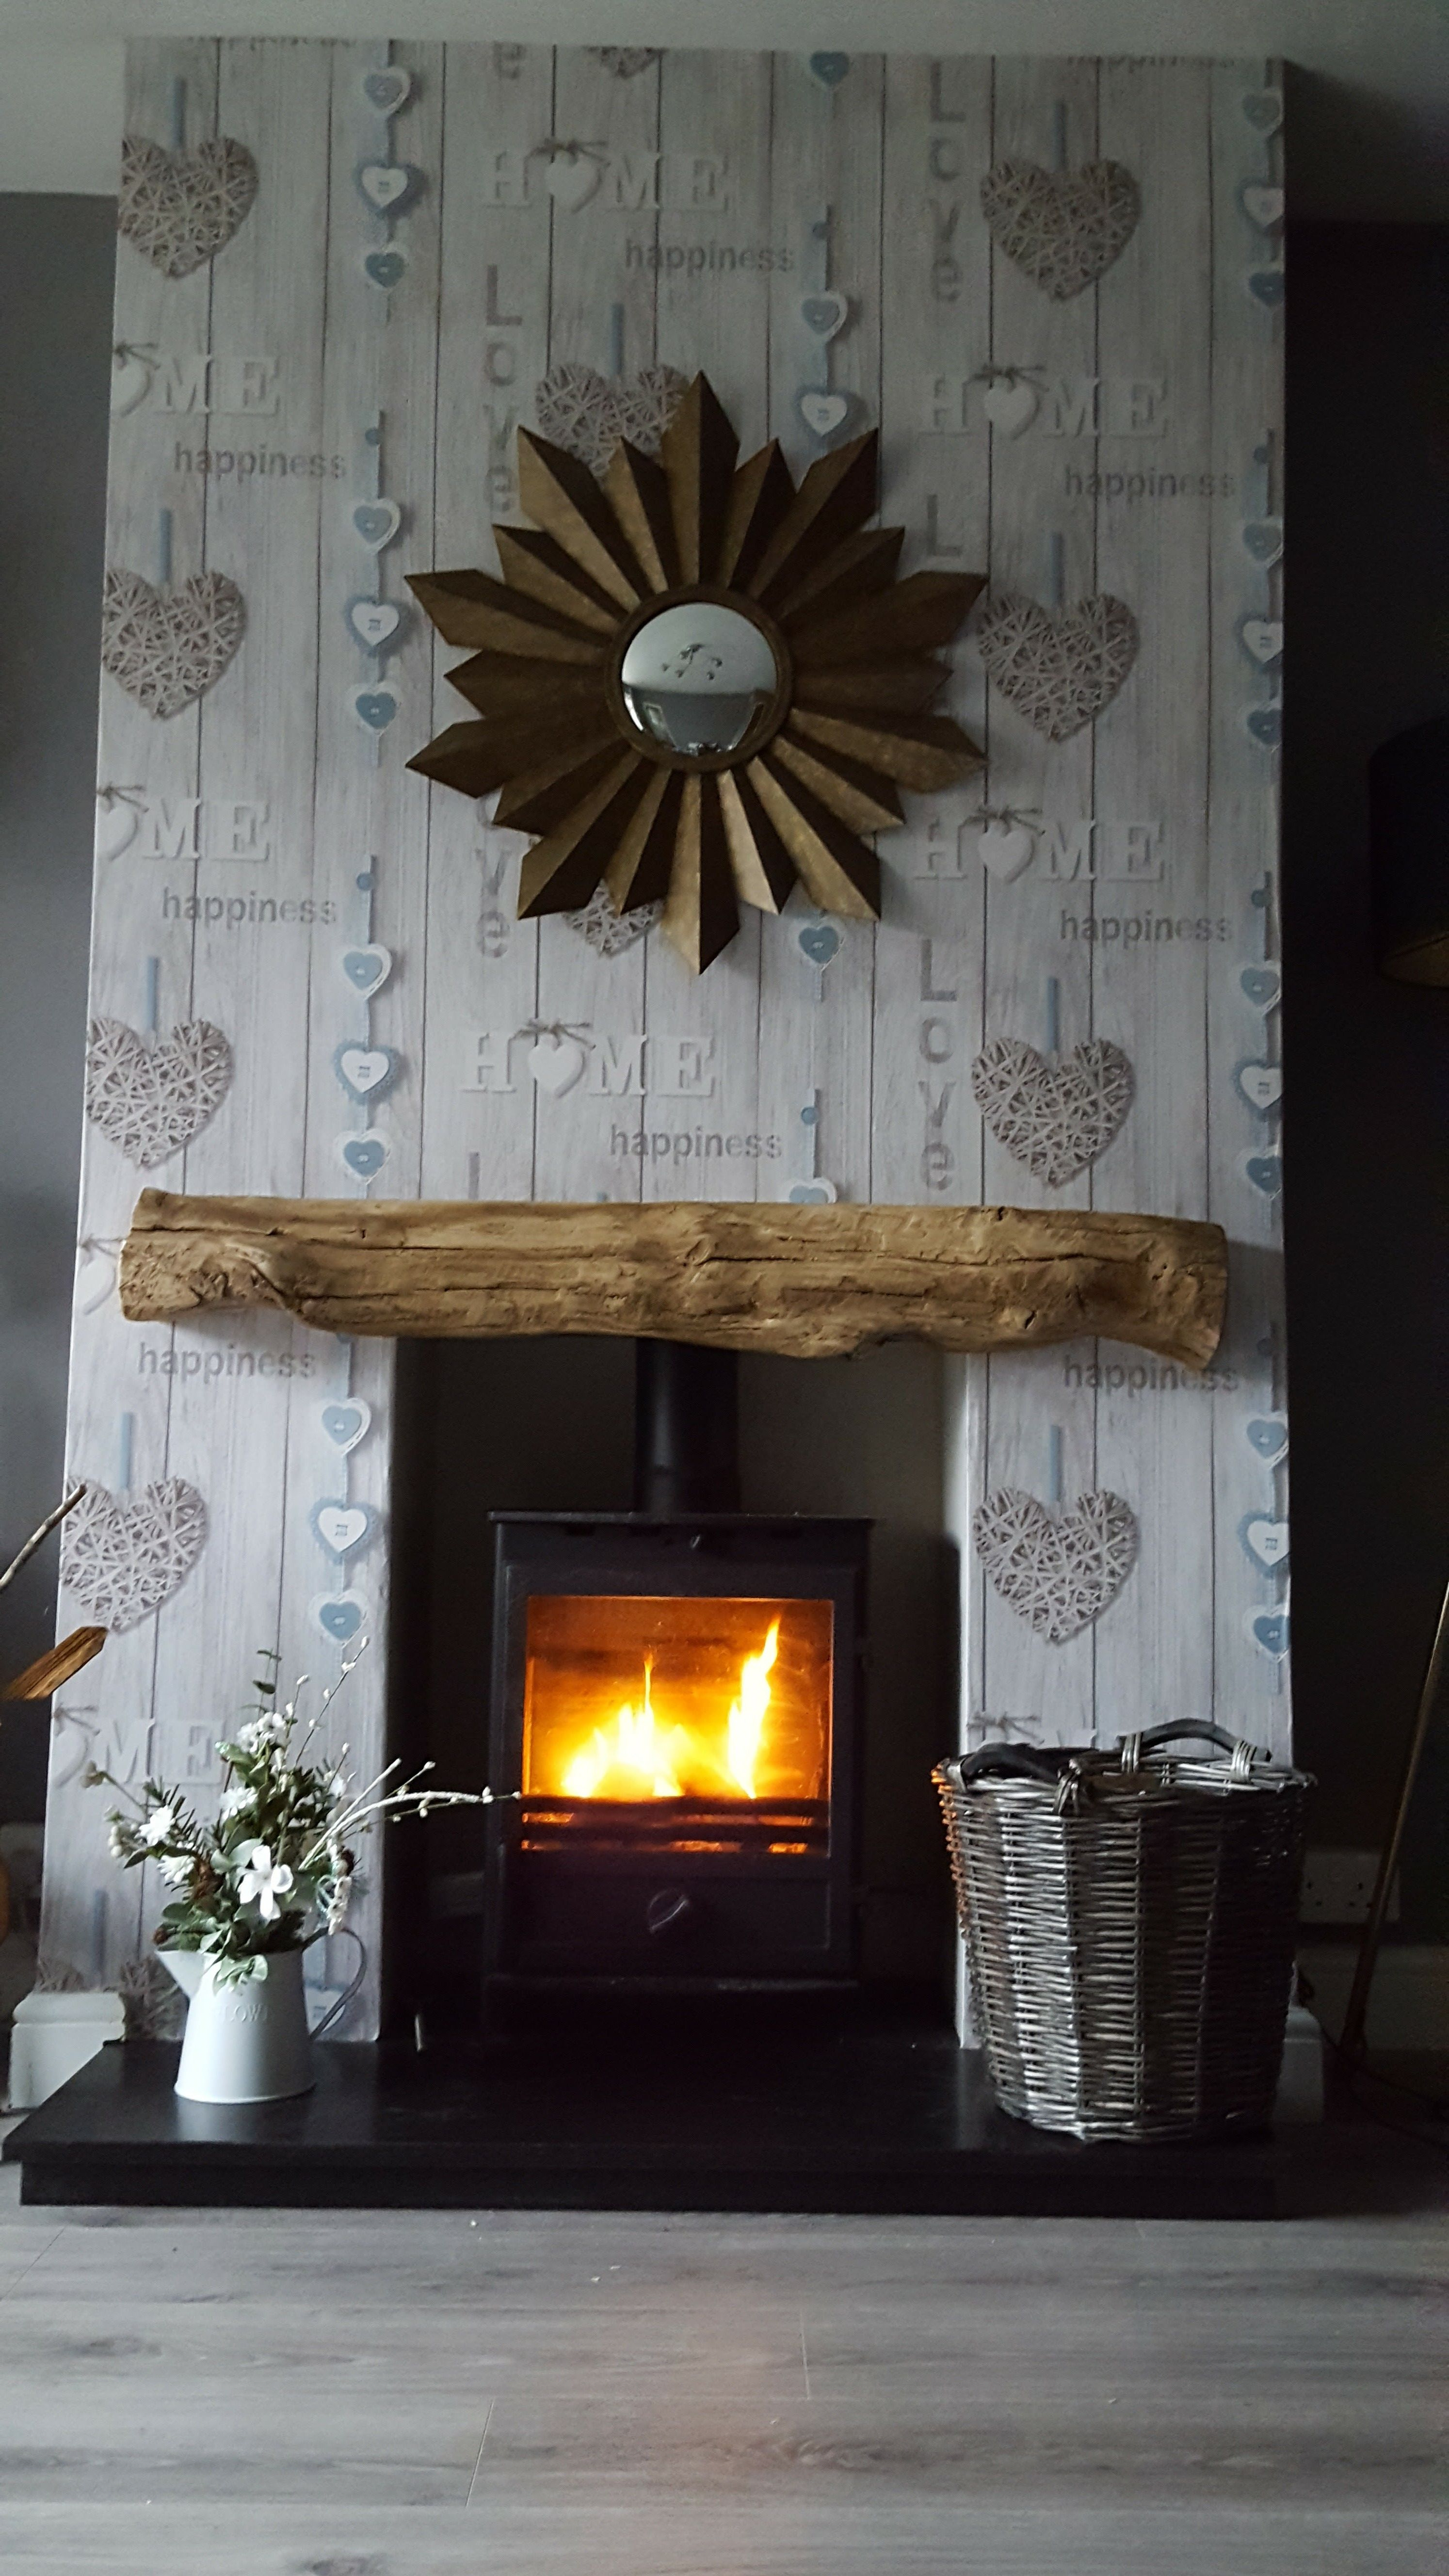 Installed this lovely wood burner and wallpapered chimney ...